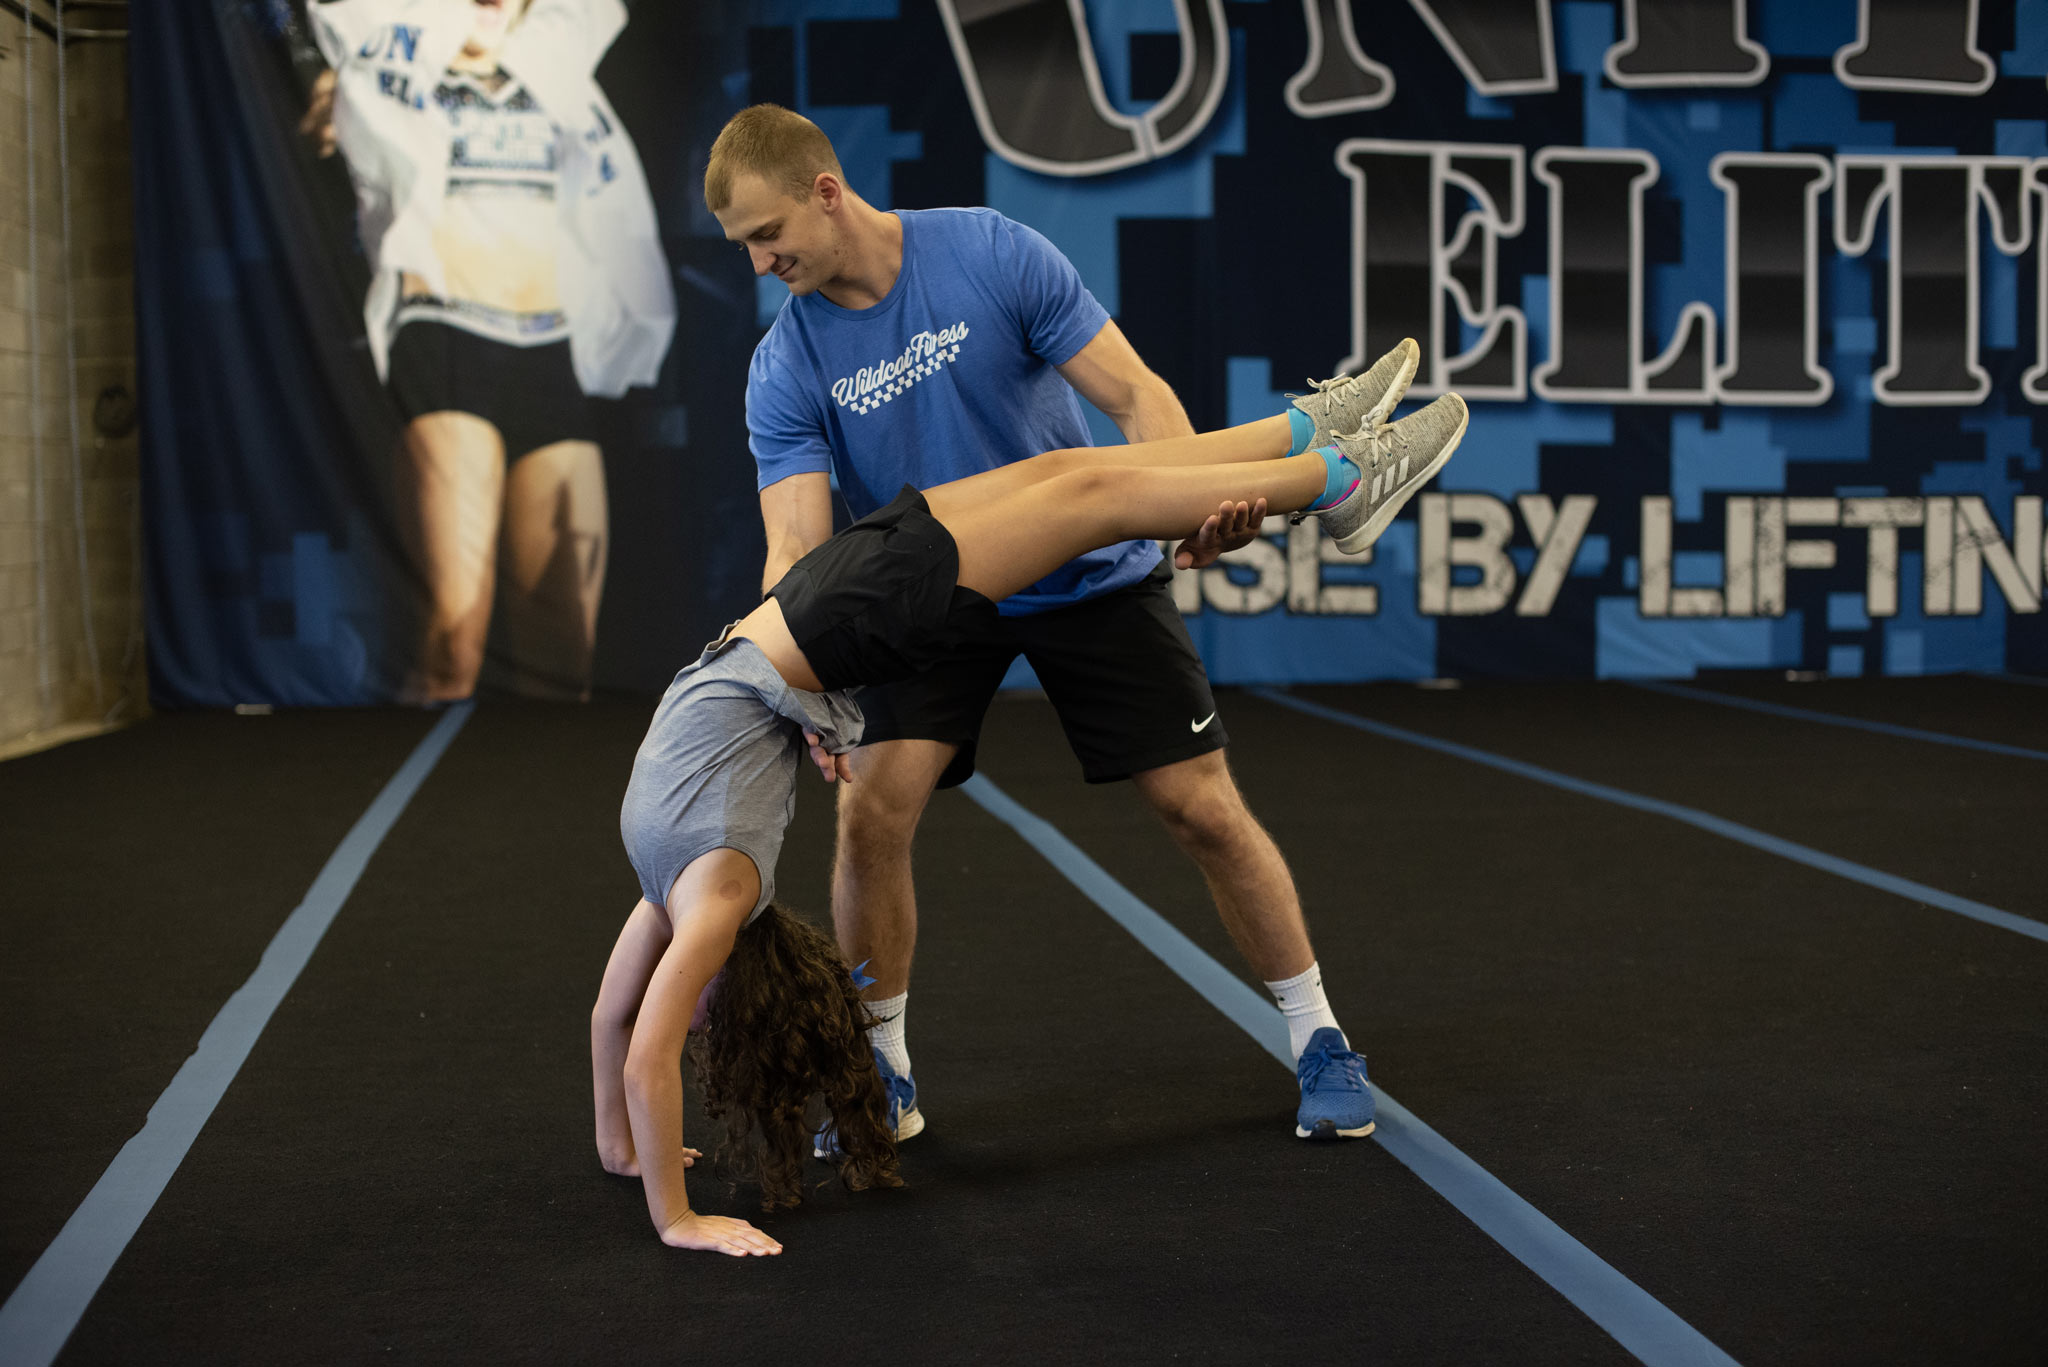 Gracie, a high school age girl with brown hair, practicing a back handspring with the help of a tall young adult male.